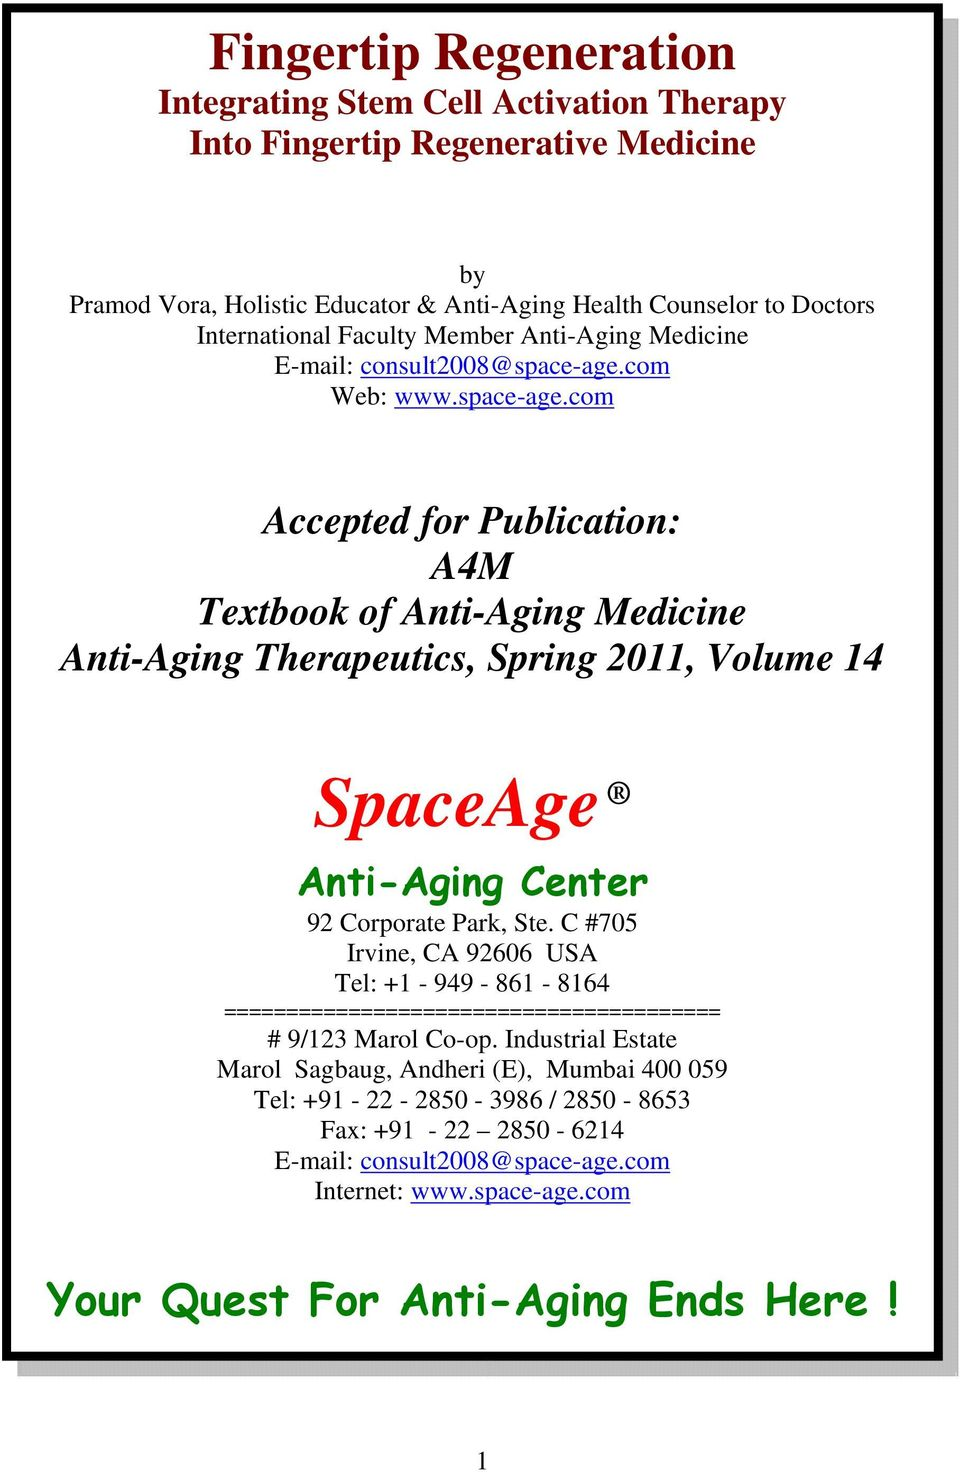 com Web: www.space-age.com Accepted for Publication: A4M Textbook of Anti-Aging Medicine Anti-Aging Therapeutics, Spring 2011, Volume 14 SpaceAge Anti-Aging Center 92 Corporate Park, Ste.